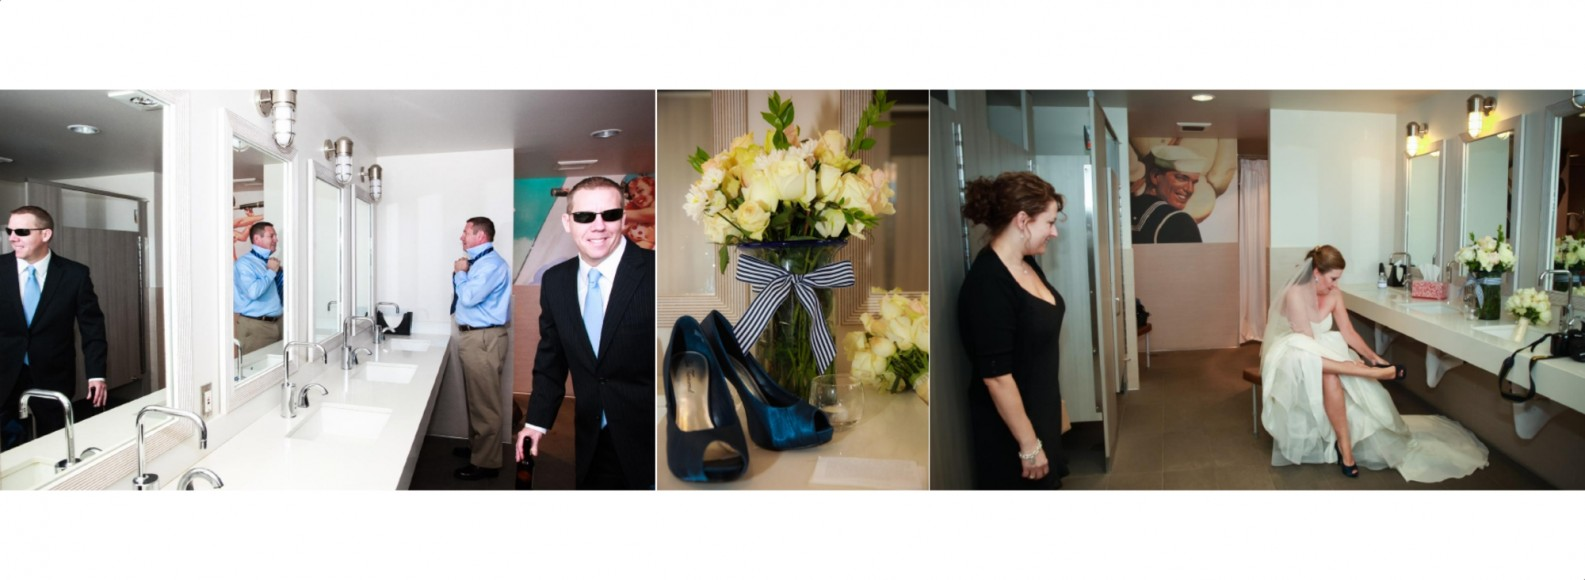 Laura and Davids Wedding Book - San Diego Yacht Wedding by Wedding Photographers Andrew Abouna - Pages 2-3